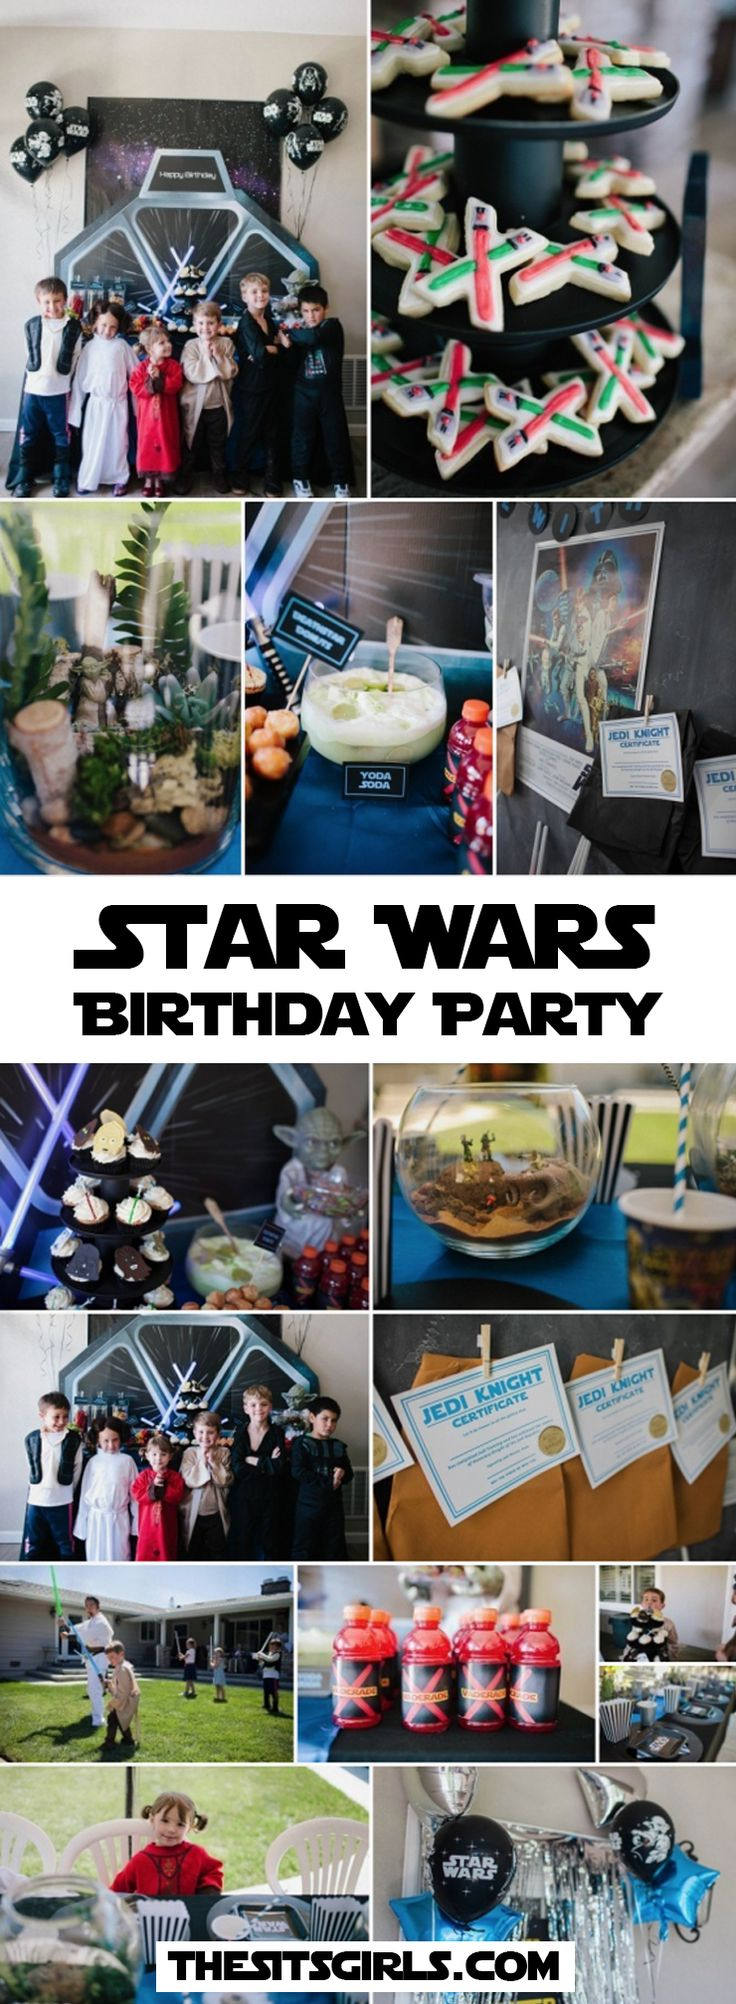 Star Wars Birthday Party Ideas   A Star Wars party is the perfect kids birthday party. Click through for inspiration and great tips to plan the perfect party for your favorite Jedi! May the force be with you.